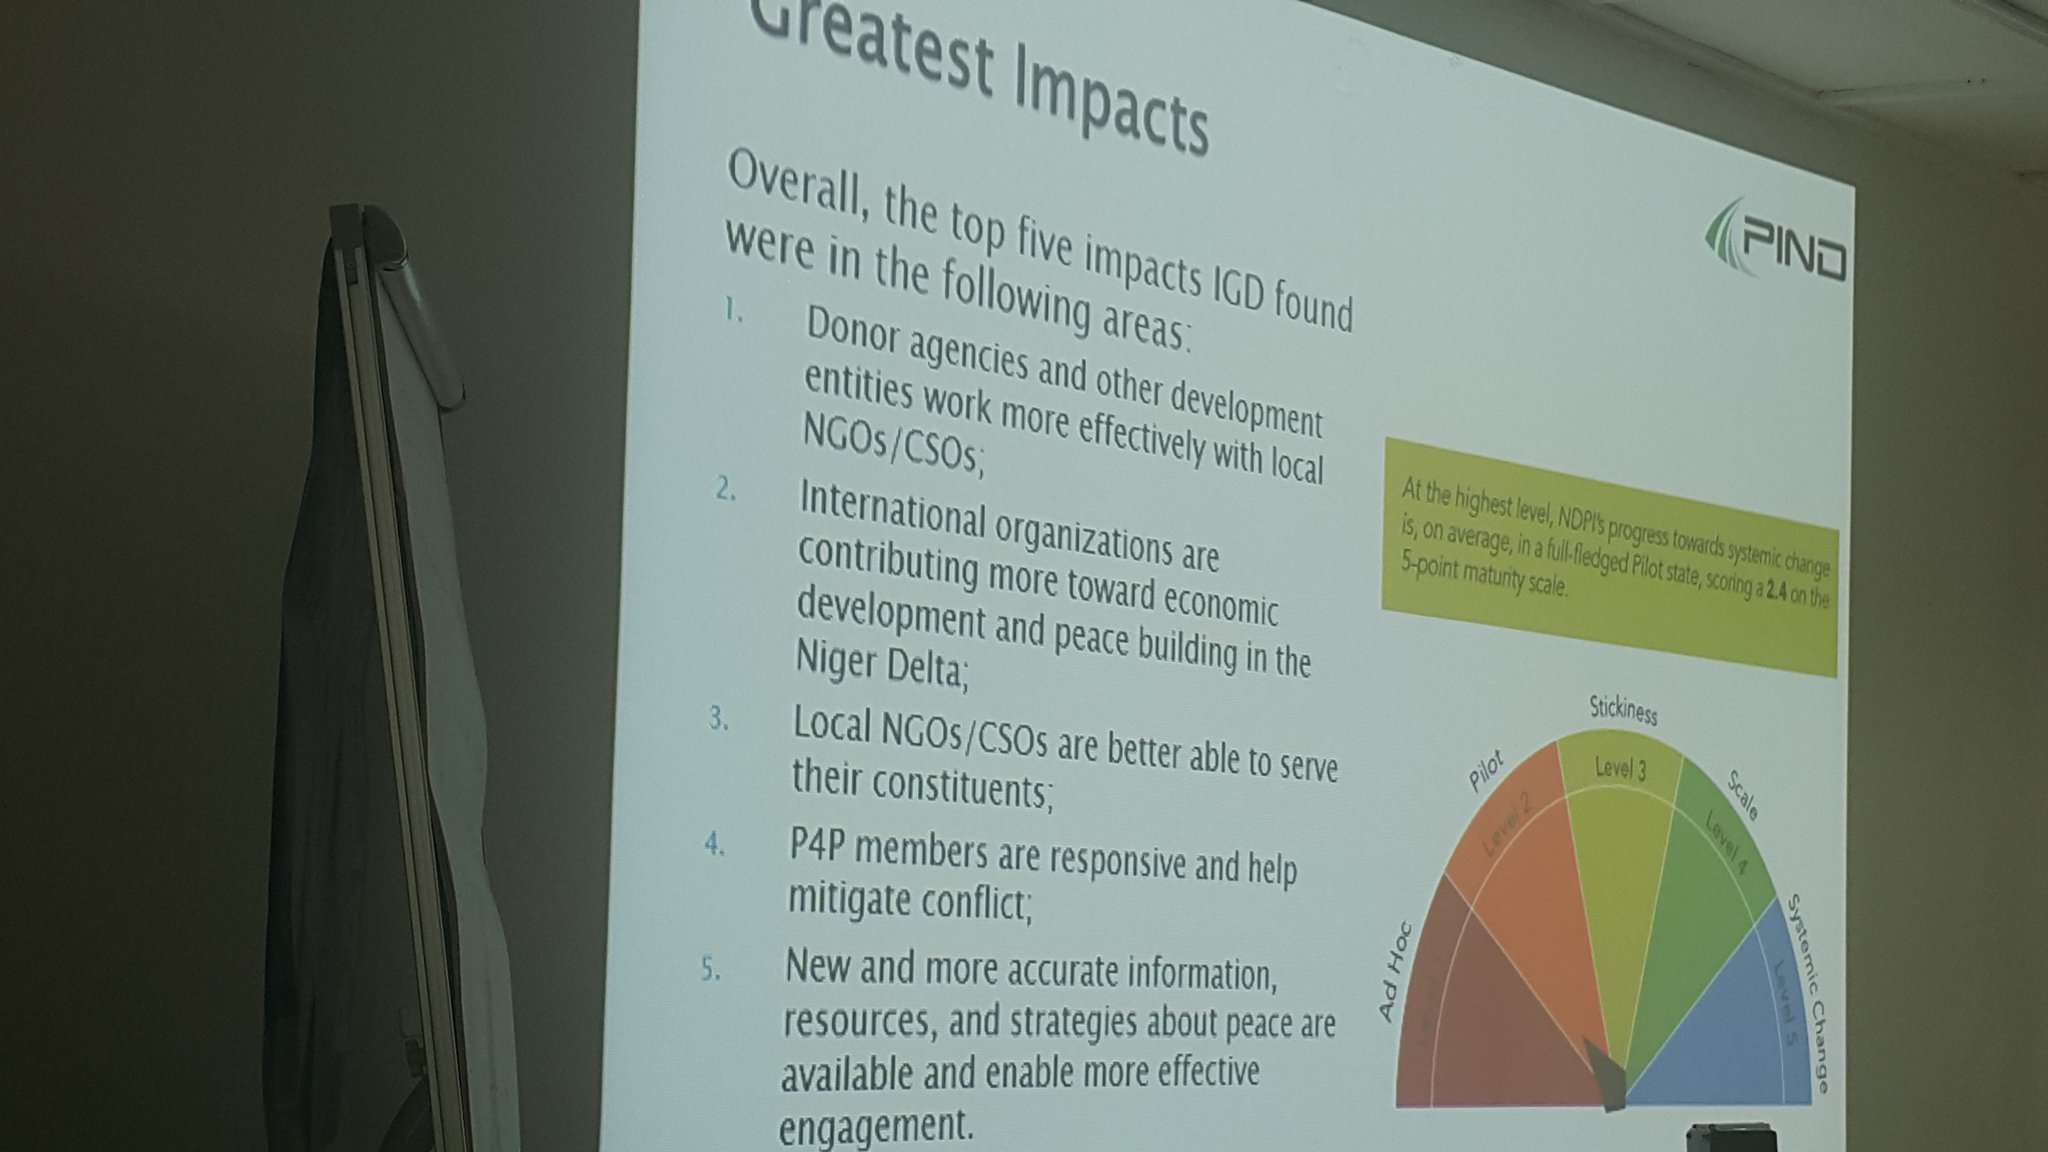 And some of our greatest impacts in our first five years #NDImpact https://t.co/PfxnsB7u2p